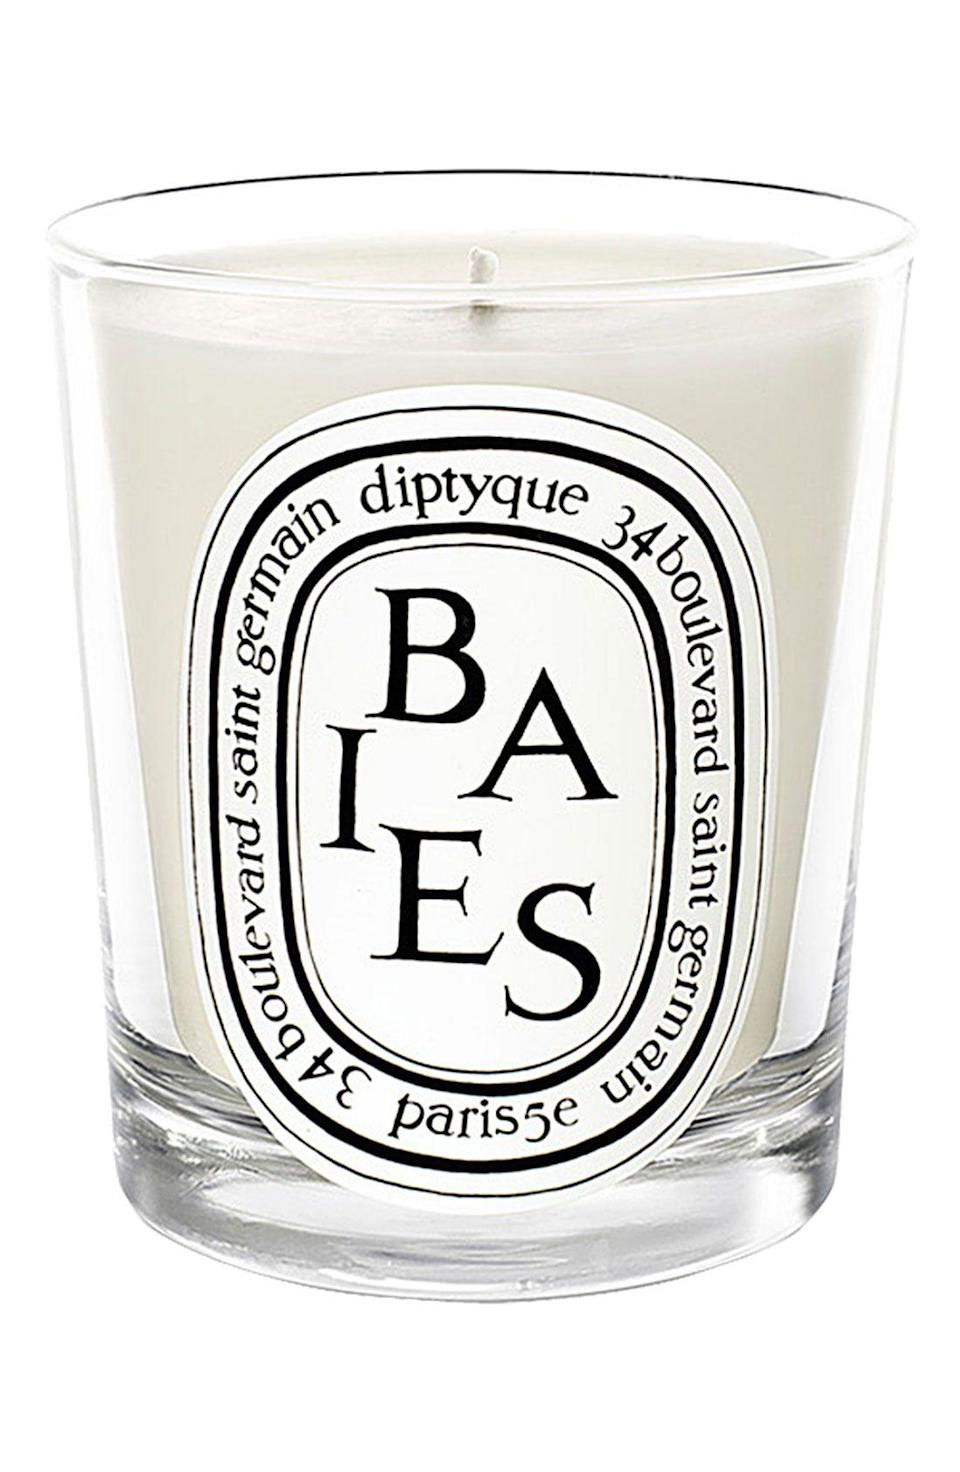 """<p><strong>DIPTYQUE</strong></p><p>nordstrom.com</p><p><strong>$38.00</strong></p><p><a href=""""https://go.redirectingat.com?id=74968X1596630&url=https%3A%2F%2Fwww.nordstrom.com%2Fs%2Fdiptyque-baies-berries-candle%2F3227984&sref=https%3A%2F%2Fwww.townandcountrymag.com%2Fleisure%2Fg26946158%2Fbest-nanny-gifts%2F"""" rel=""""nofollow noopener"""" target=""""_blank"""" data-ylk=""""slk:Shop Now"""" class=""""link rapid-noclick-resp"""">Shop Now</a></p><p>A French candle with a devoted following is a sweet-smelling token of appreciation. </p>"""